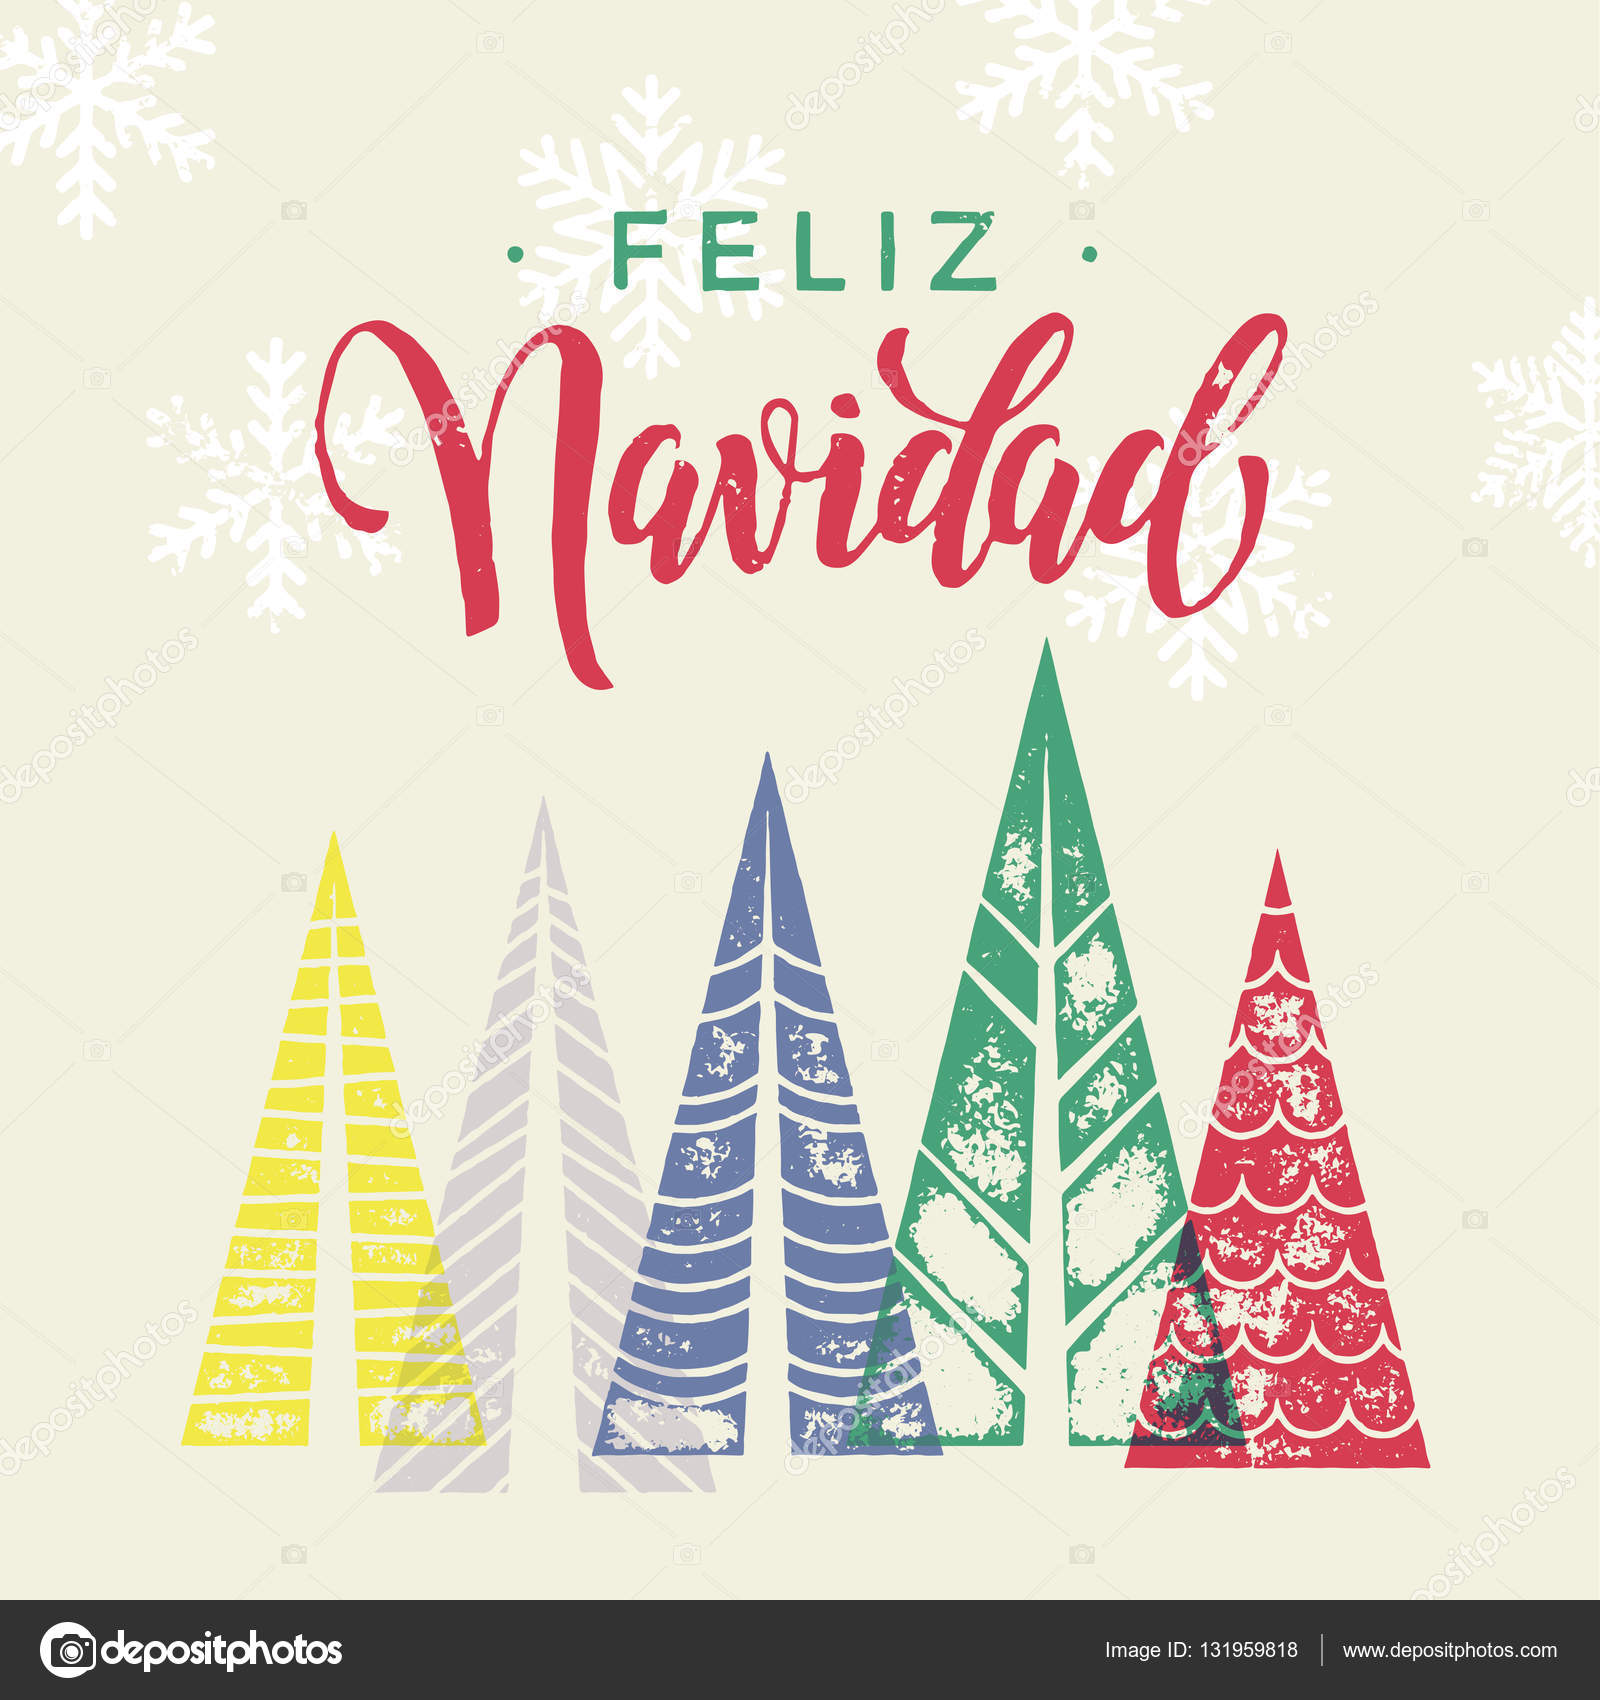 Winter forest background for spain christmas greeting card stock winter forest background for spain christmas greeting card stock vector m4hsunfo